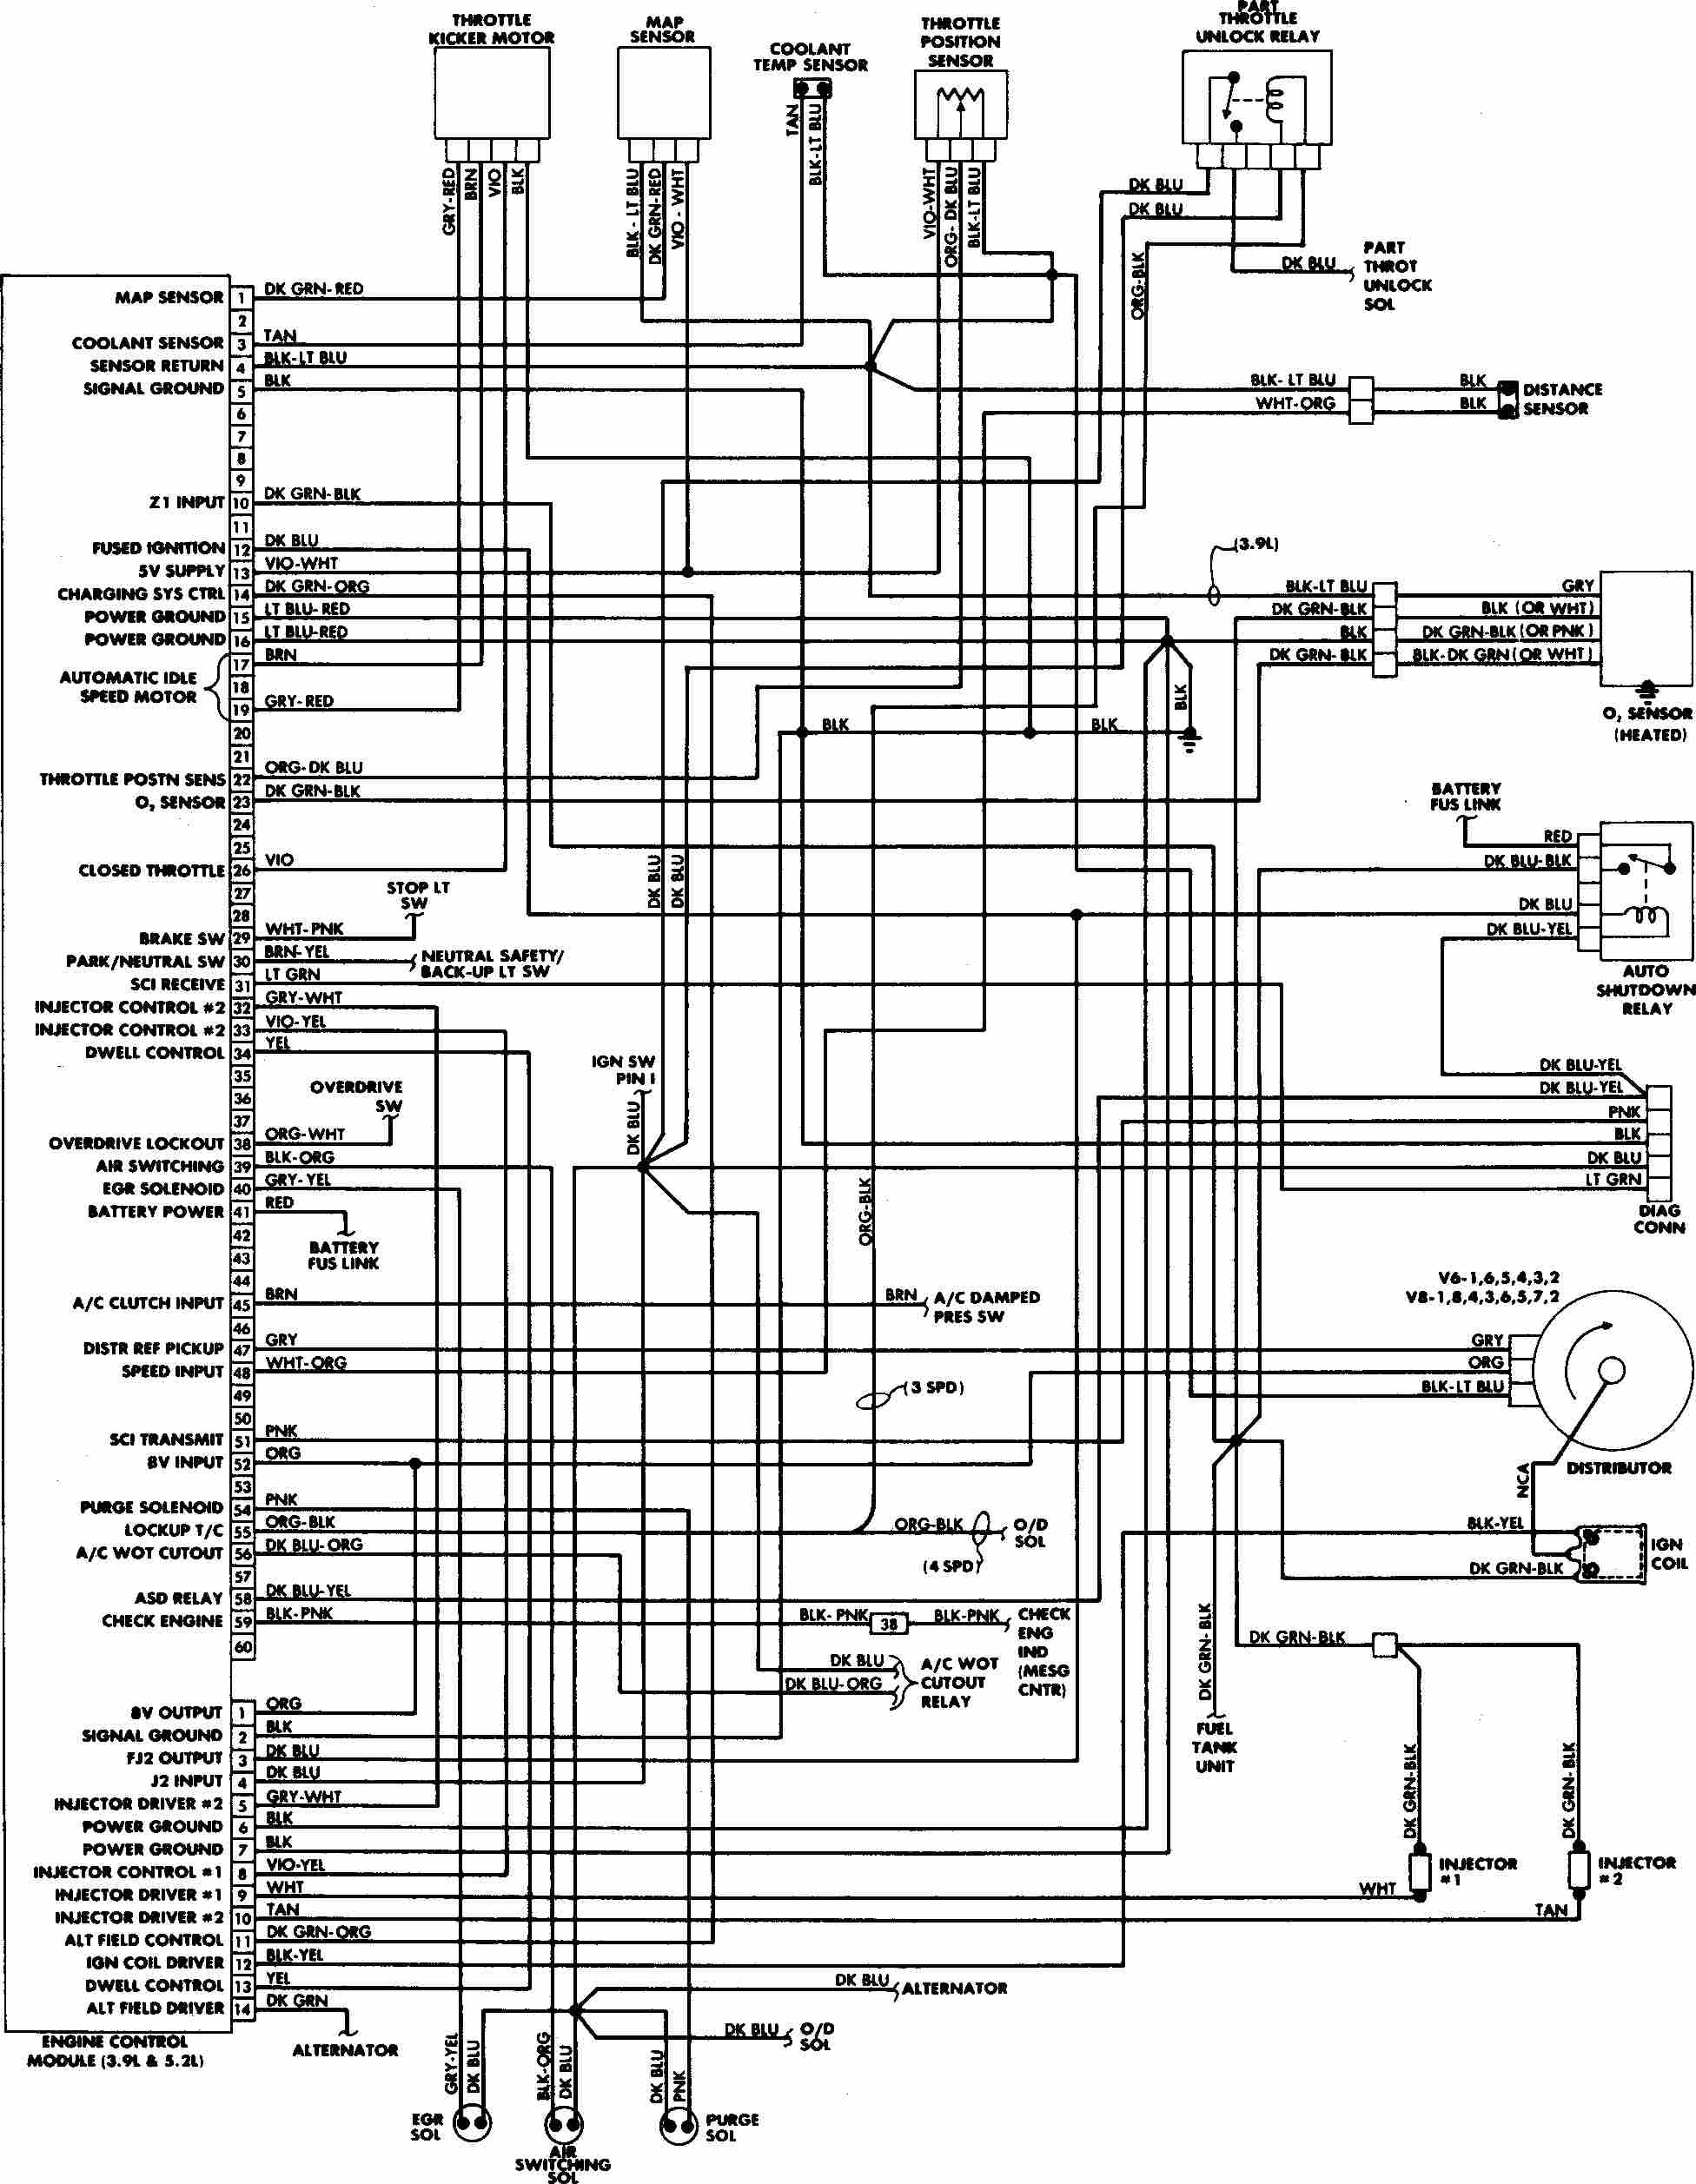 wiring diagram honda jazz 2008